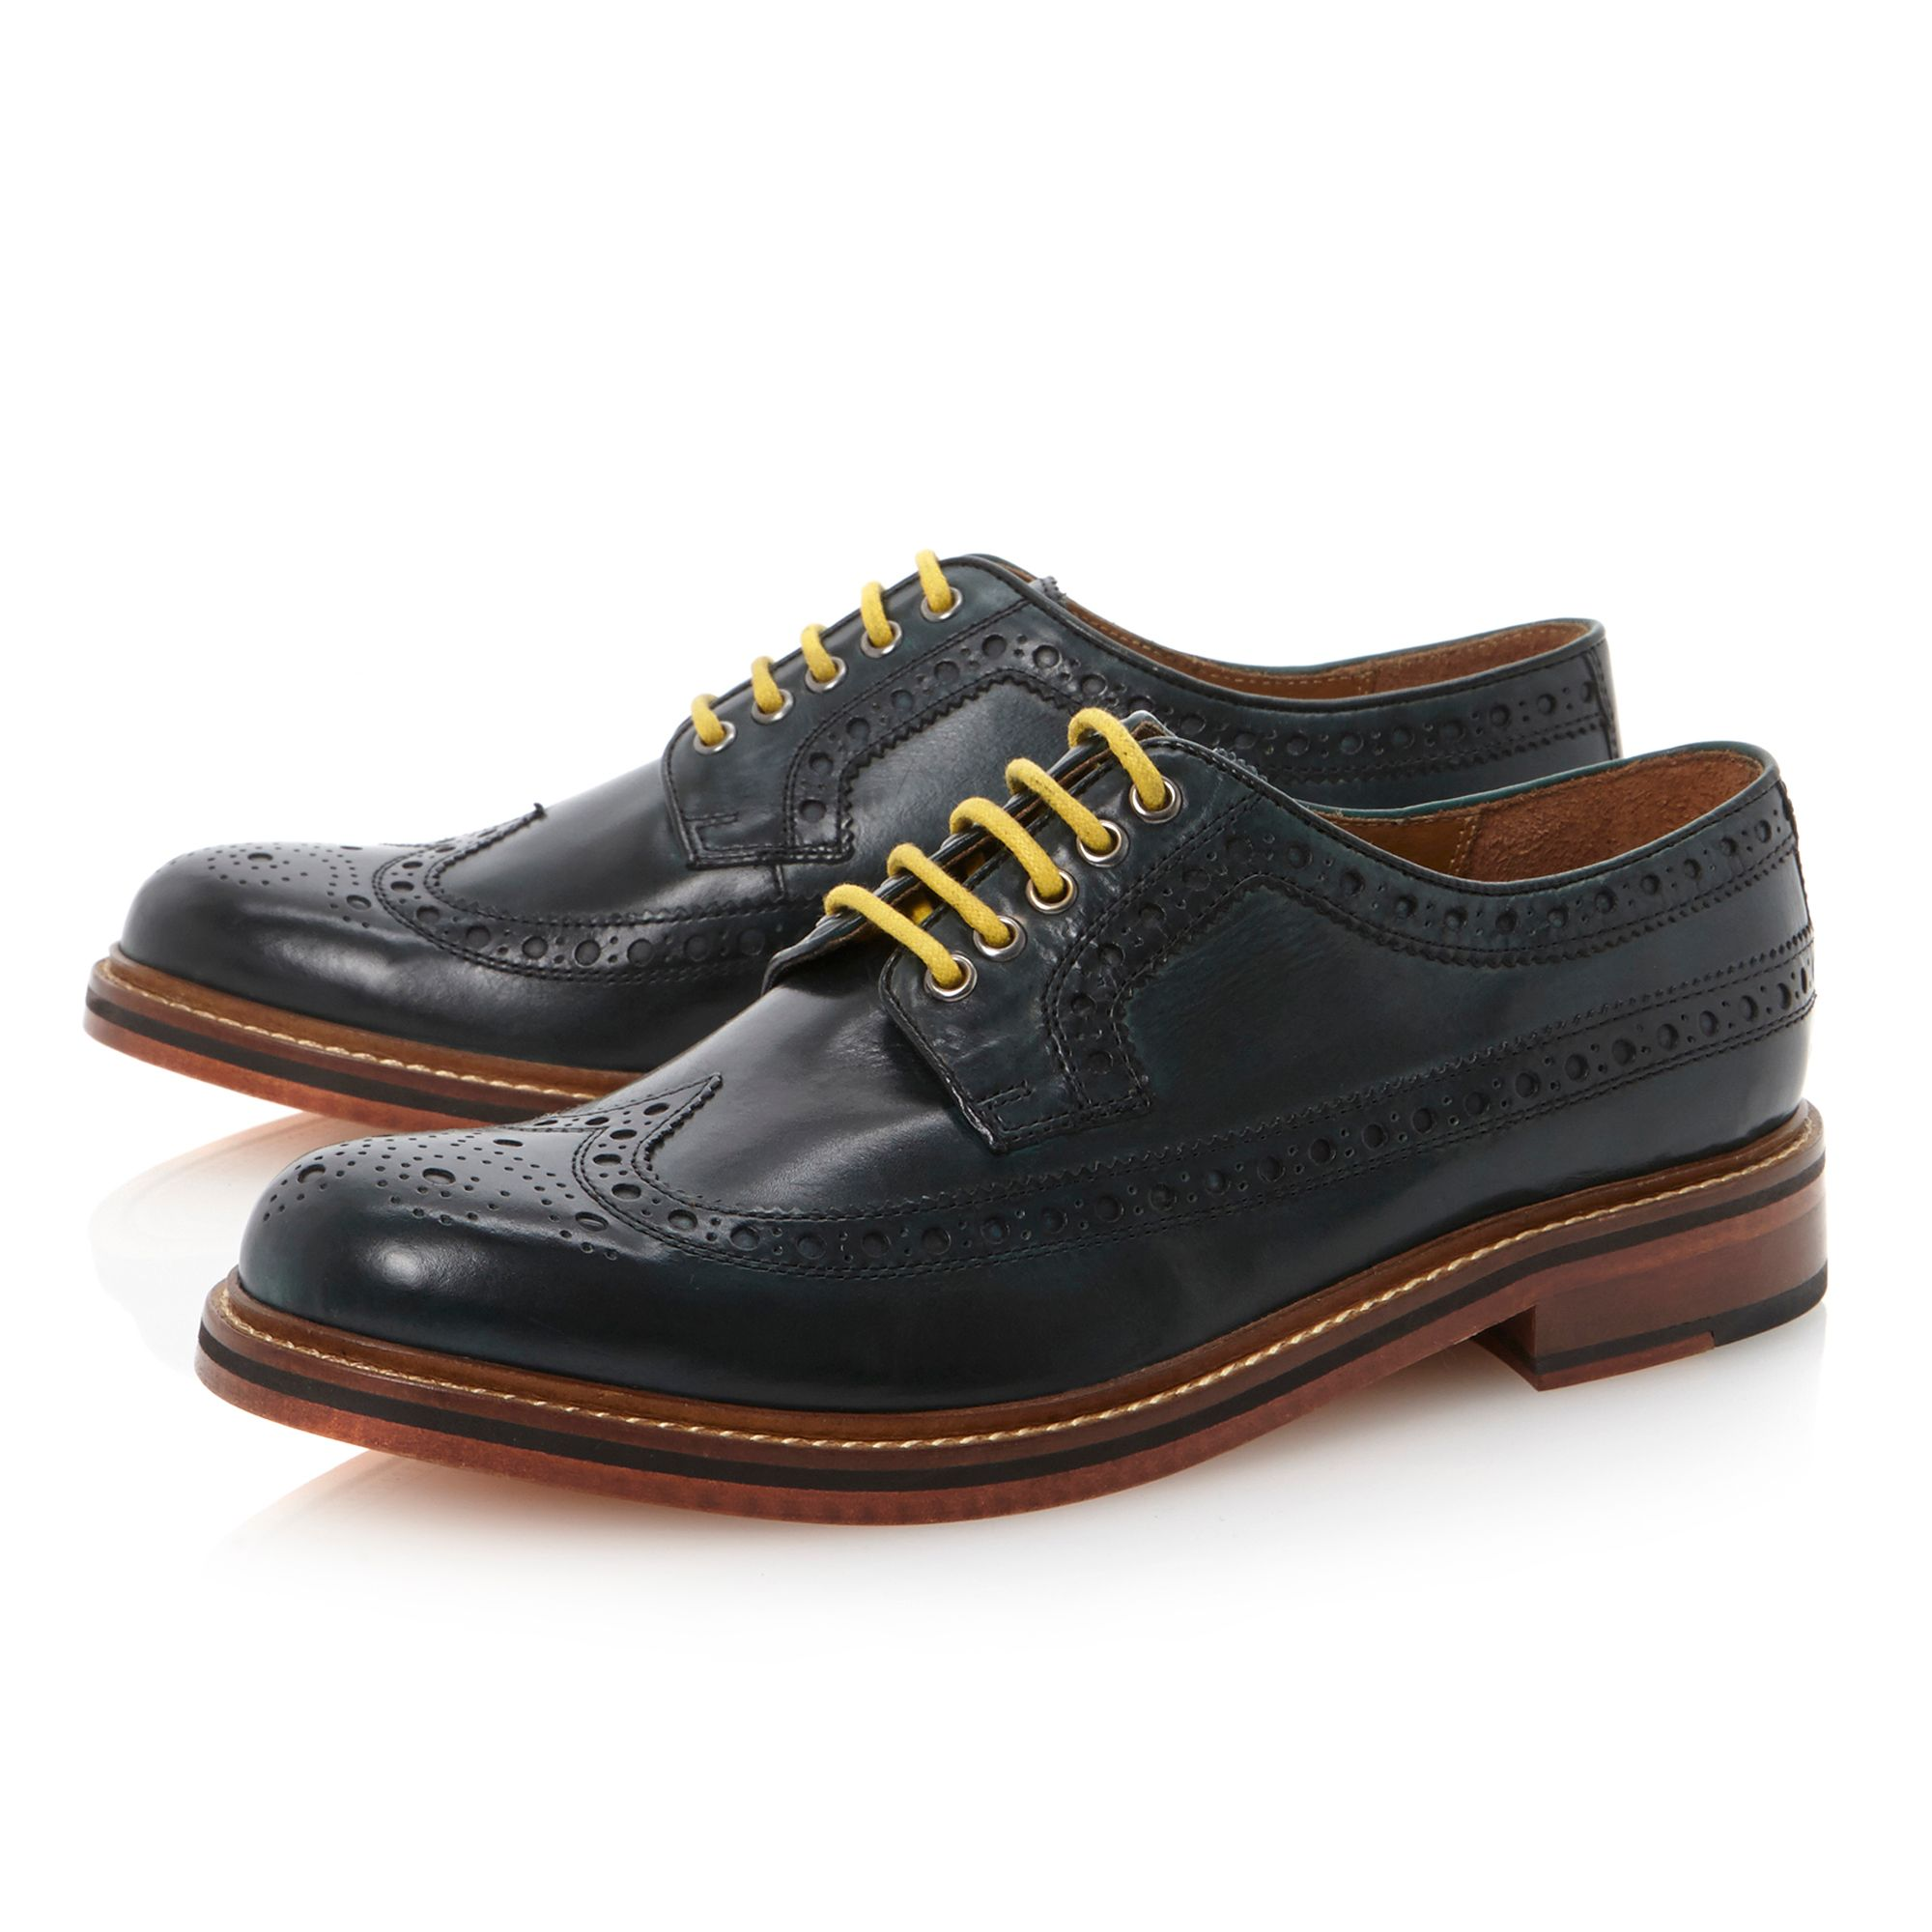 Braxton storm 2 heavy sole brogue